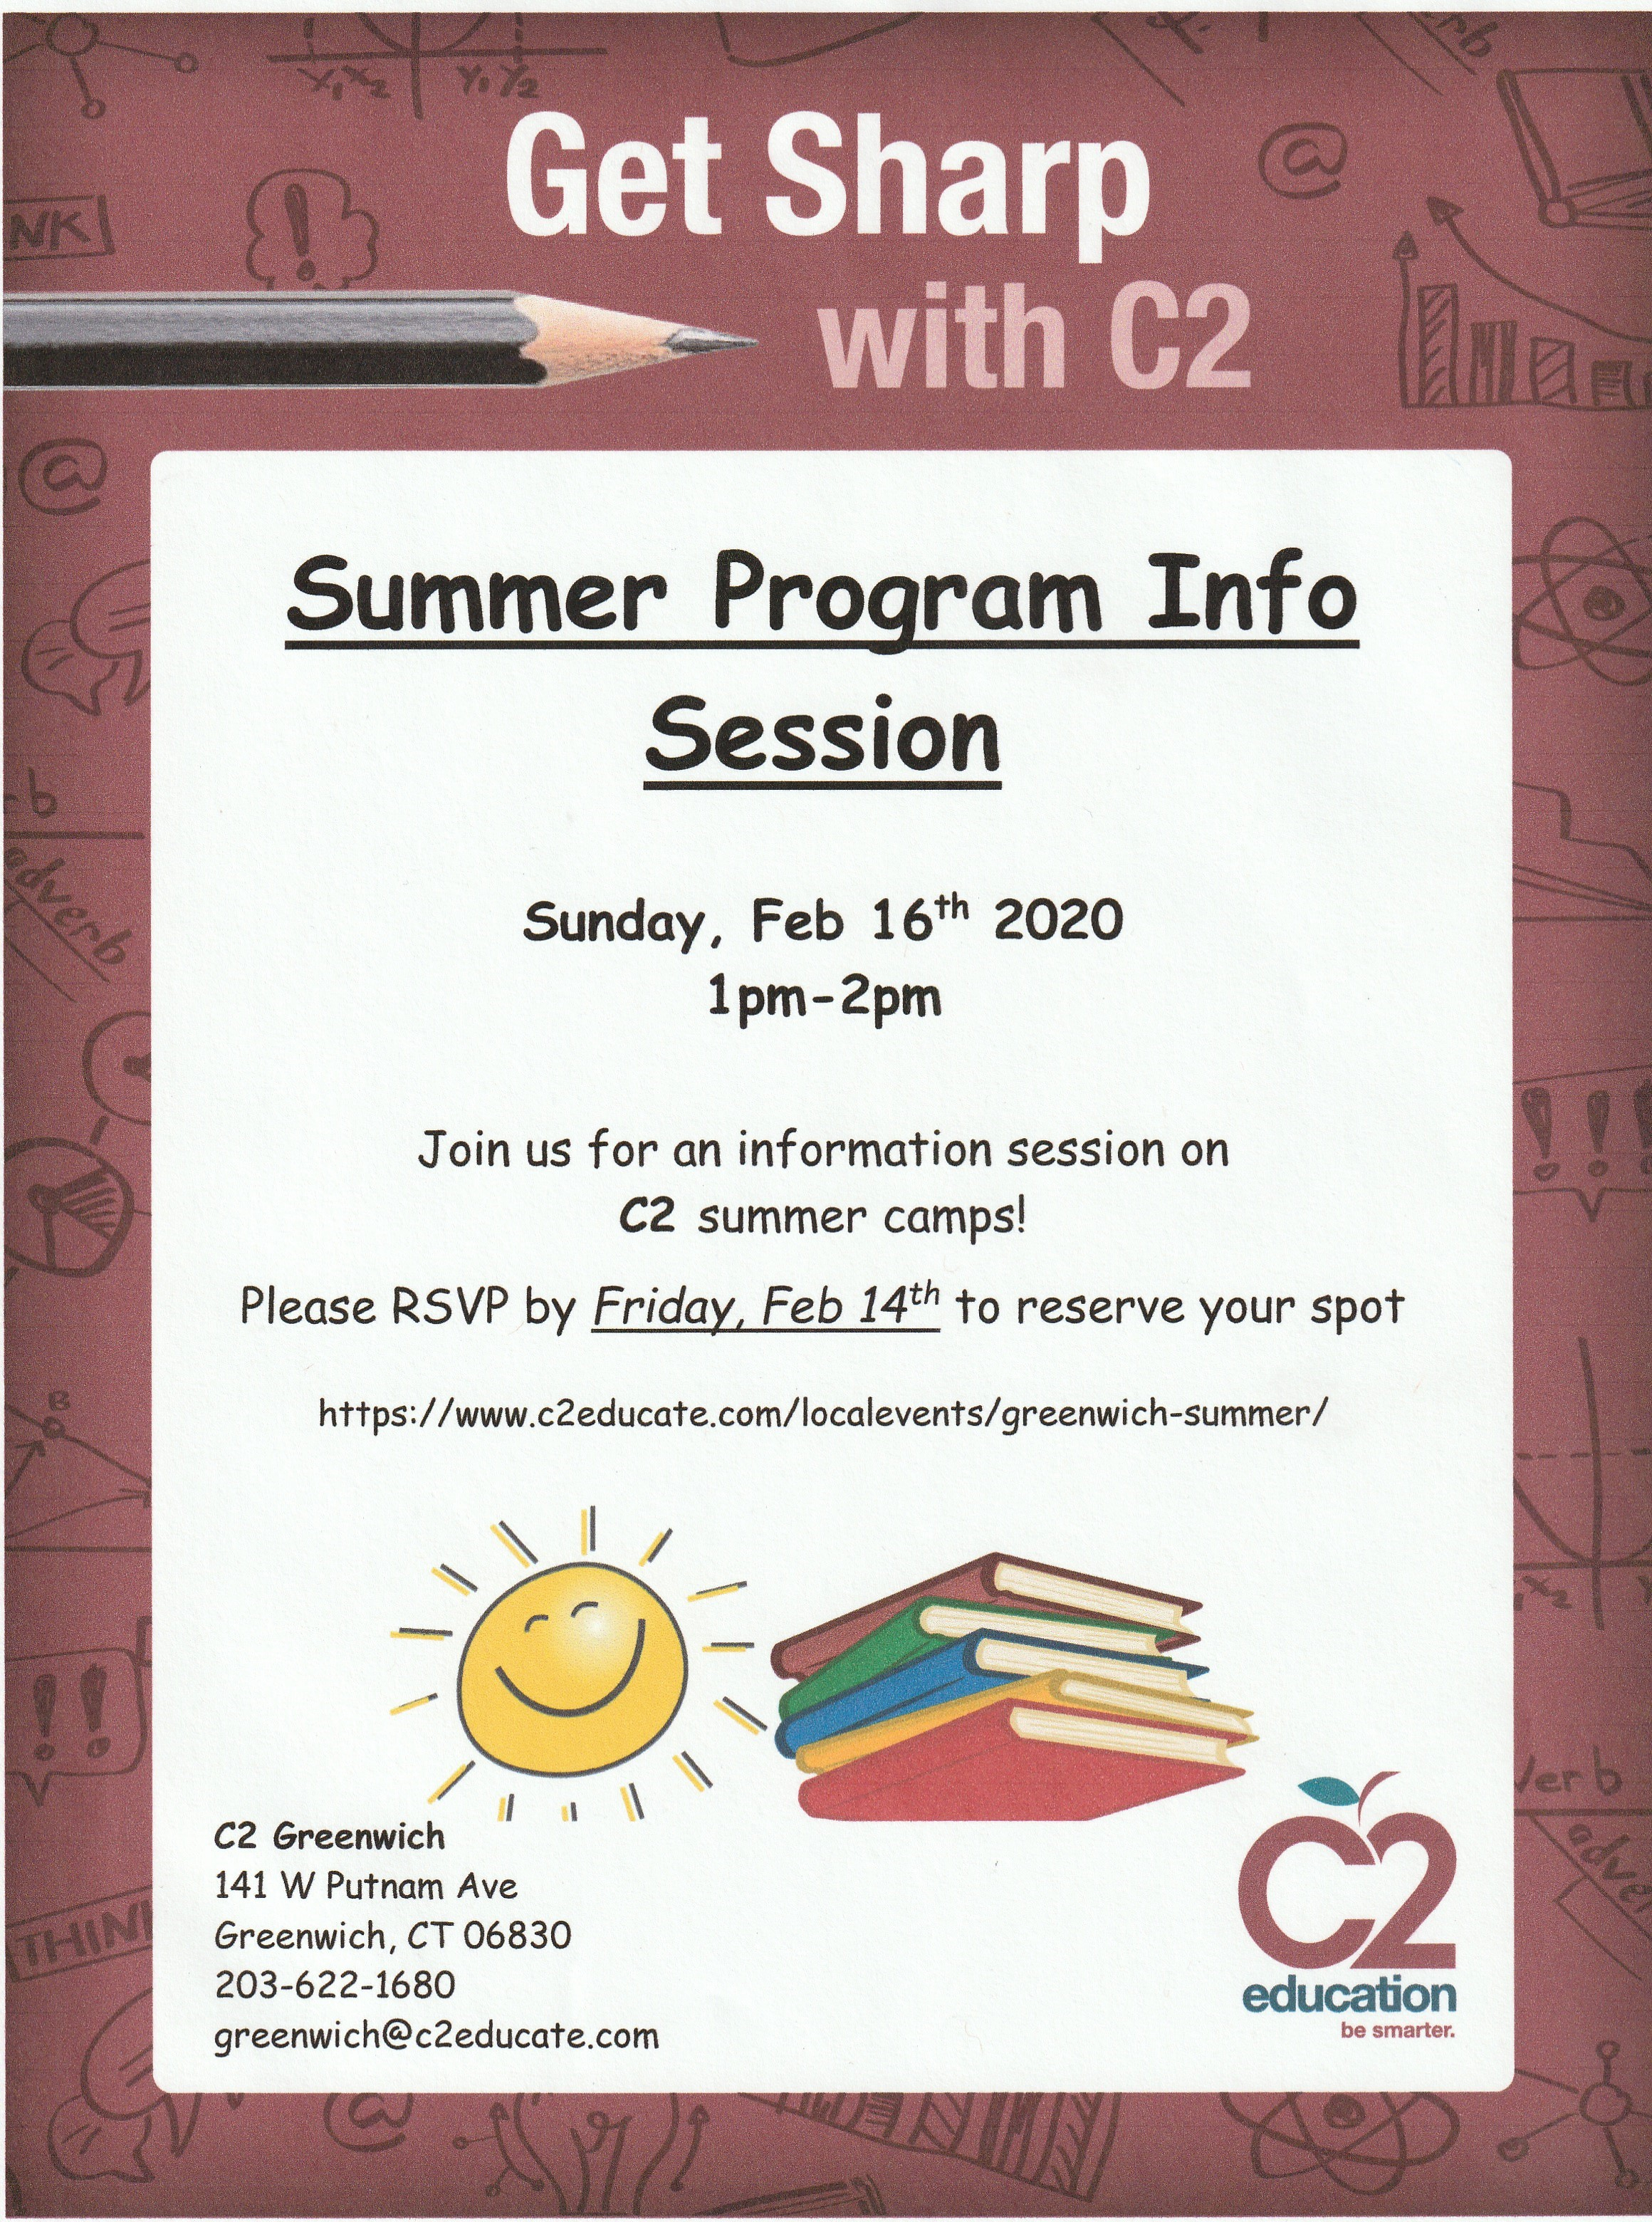 Summer Programs Info Session at C2